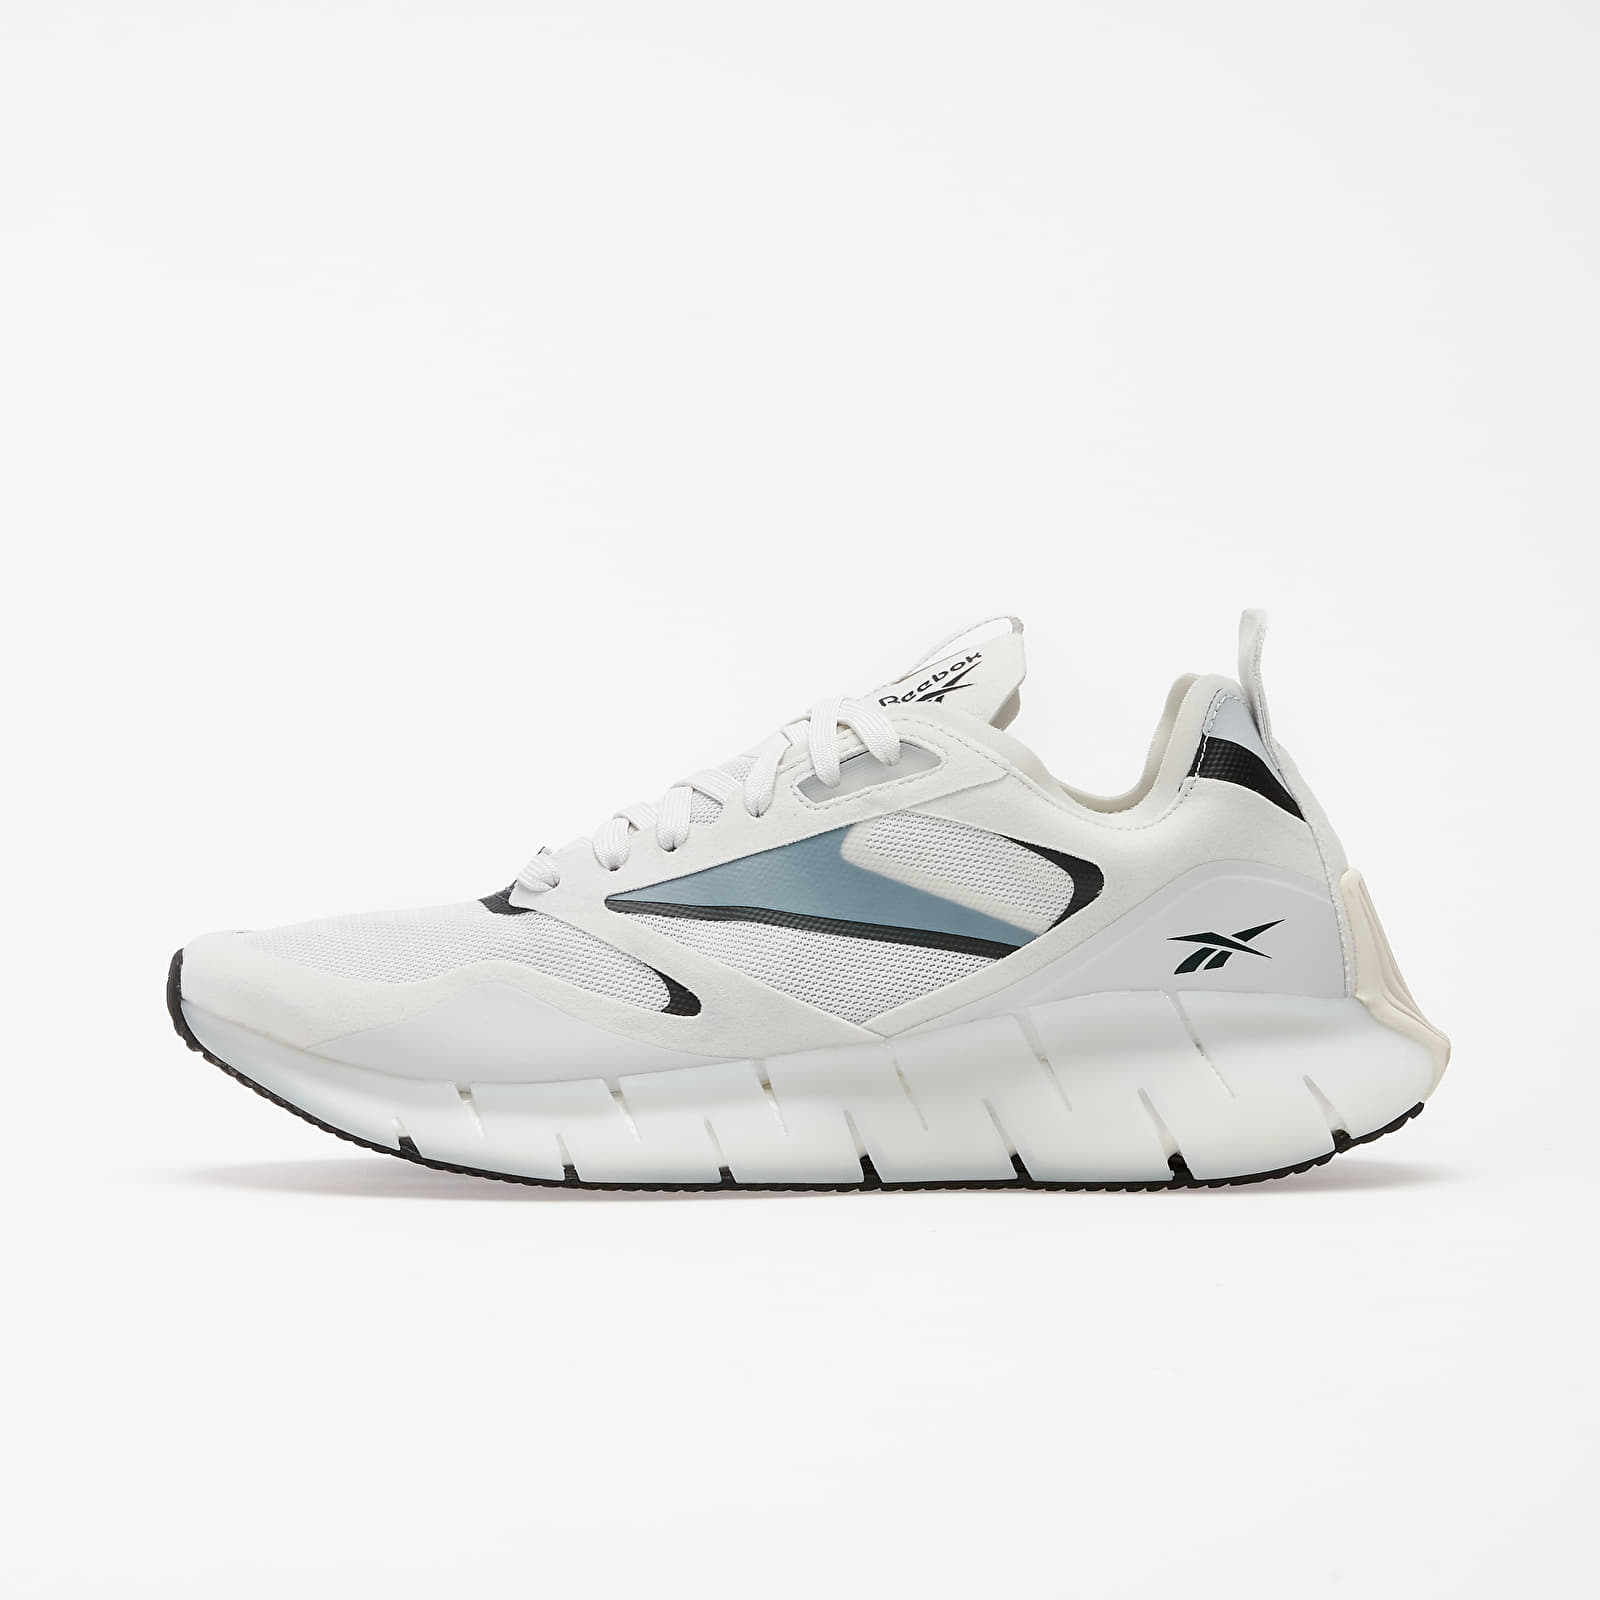 Männer Reebok Zig Kinetica Horizon True Grey 1/ White/ Black